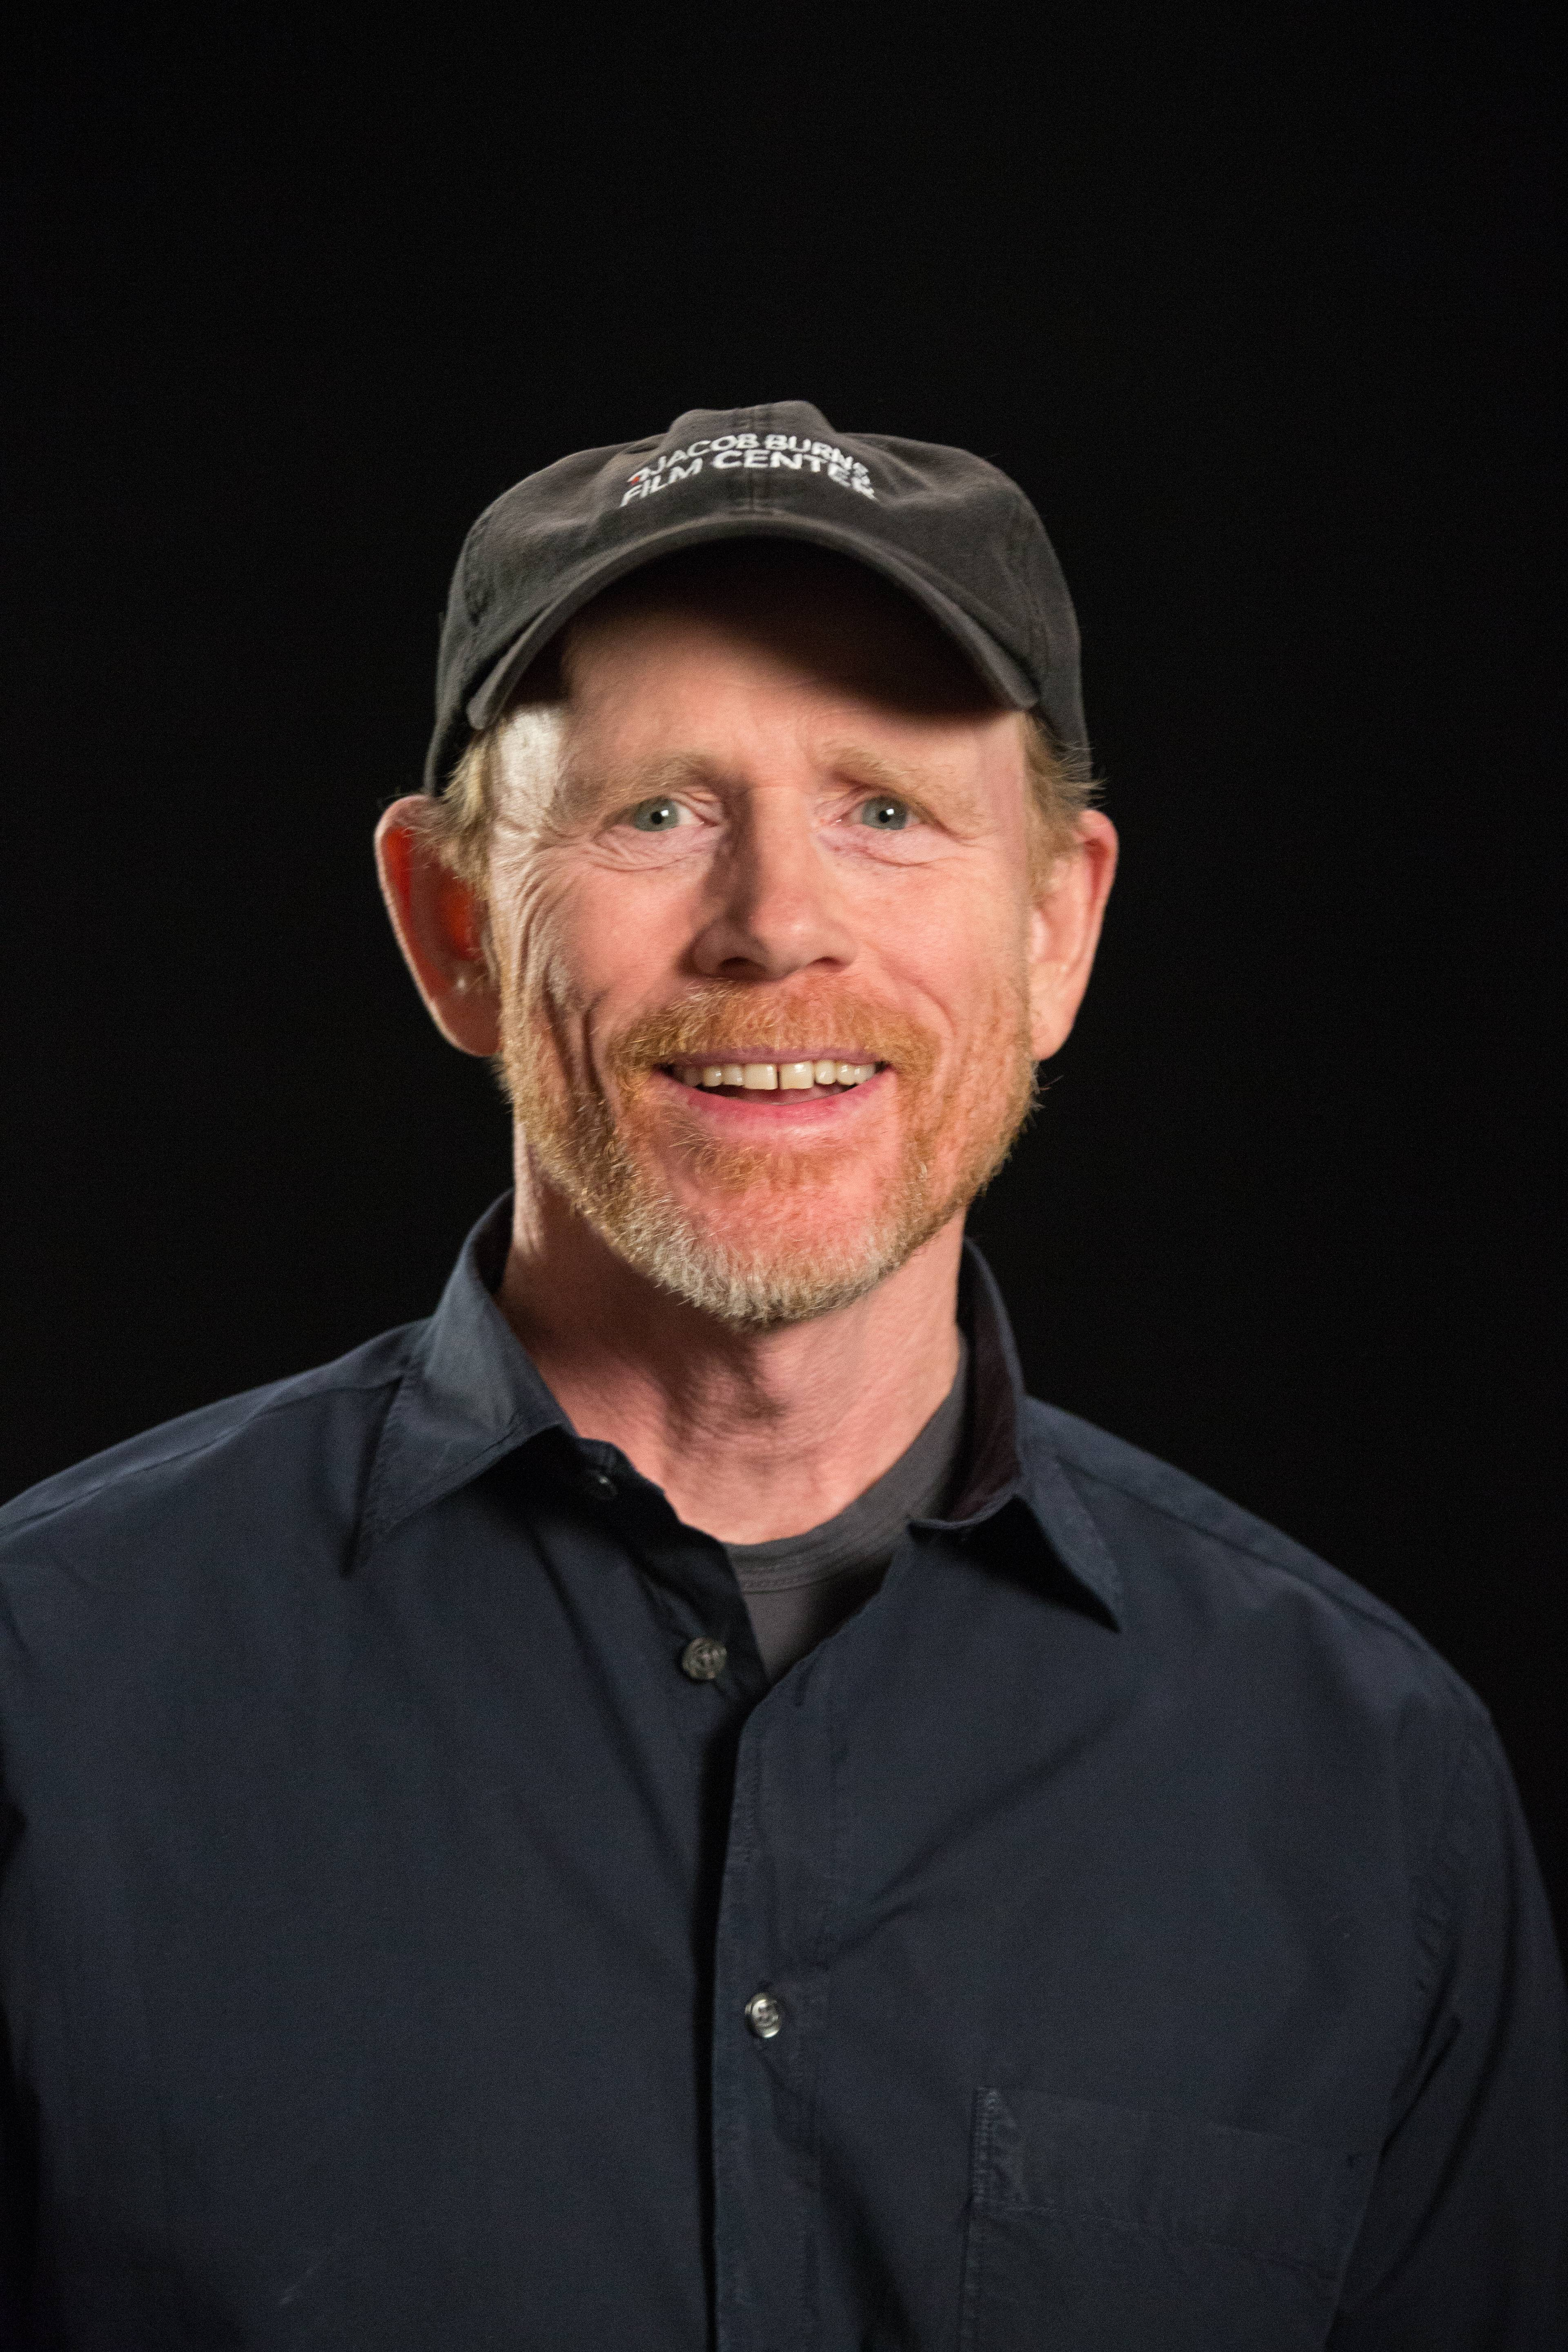 ron howard geniusron howard films, ron howard movies, ron howard filmleri, ron howard contact information, ron howard actor, ron howard instagram, ron howard wife, ron howard bio, ron howard filmleri izle, ron howard height, ron howard gta, ron howard wiki, ron howard (, ron howard twitter, ron howard quotes, ron howard daughter, ron howard beatles, ron howard imdb, ron howard 2016, ron howard genius